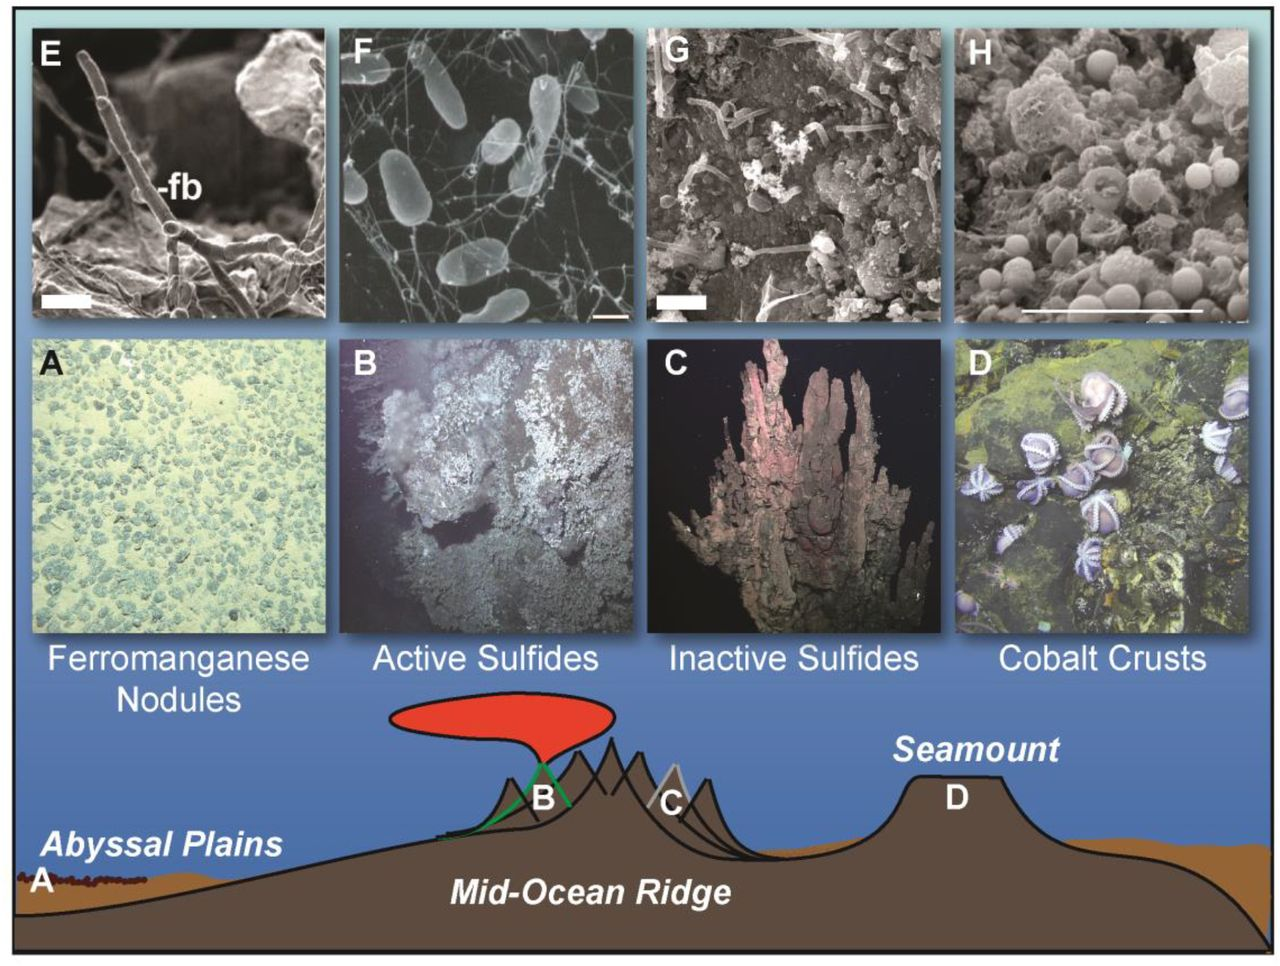 Impacts of Deep-Sea Mining on Microbial Ecosystem Services